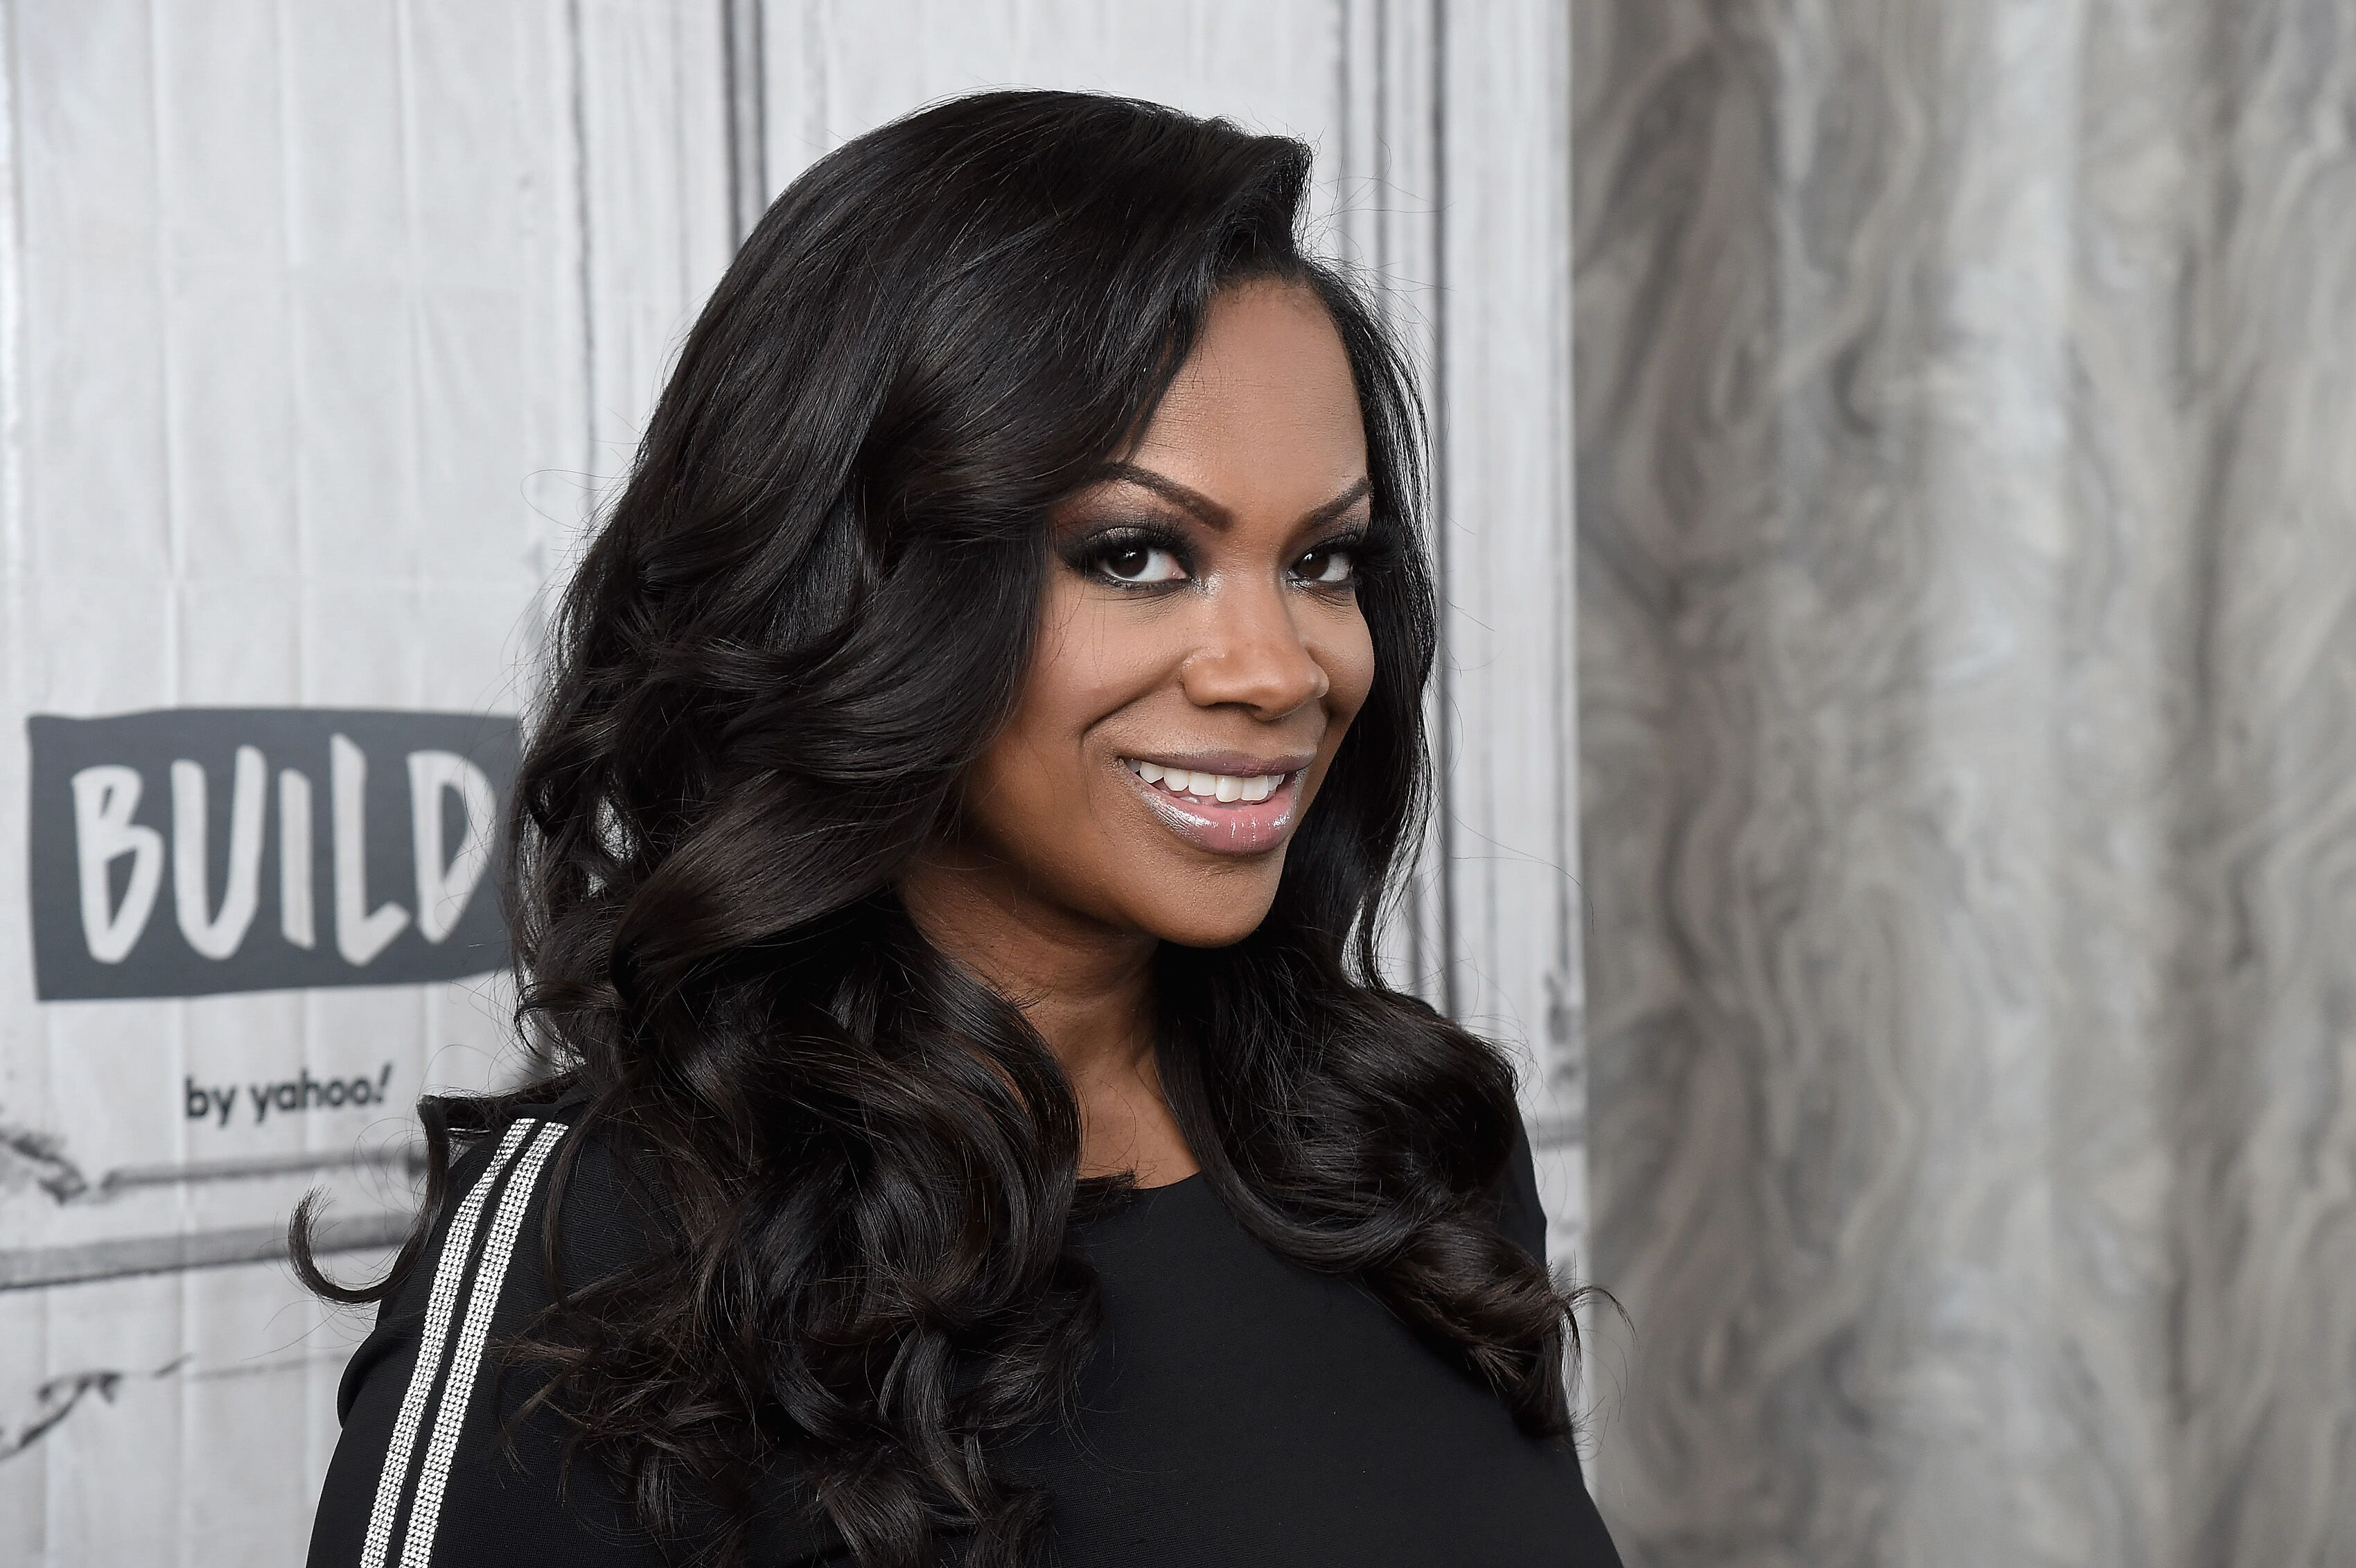 """Kandi Burruss in the Build studio to promote """"Real Housewives of Atlanta"""" 